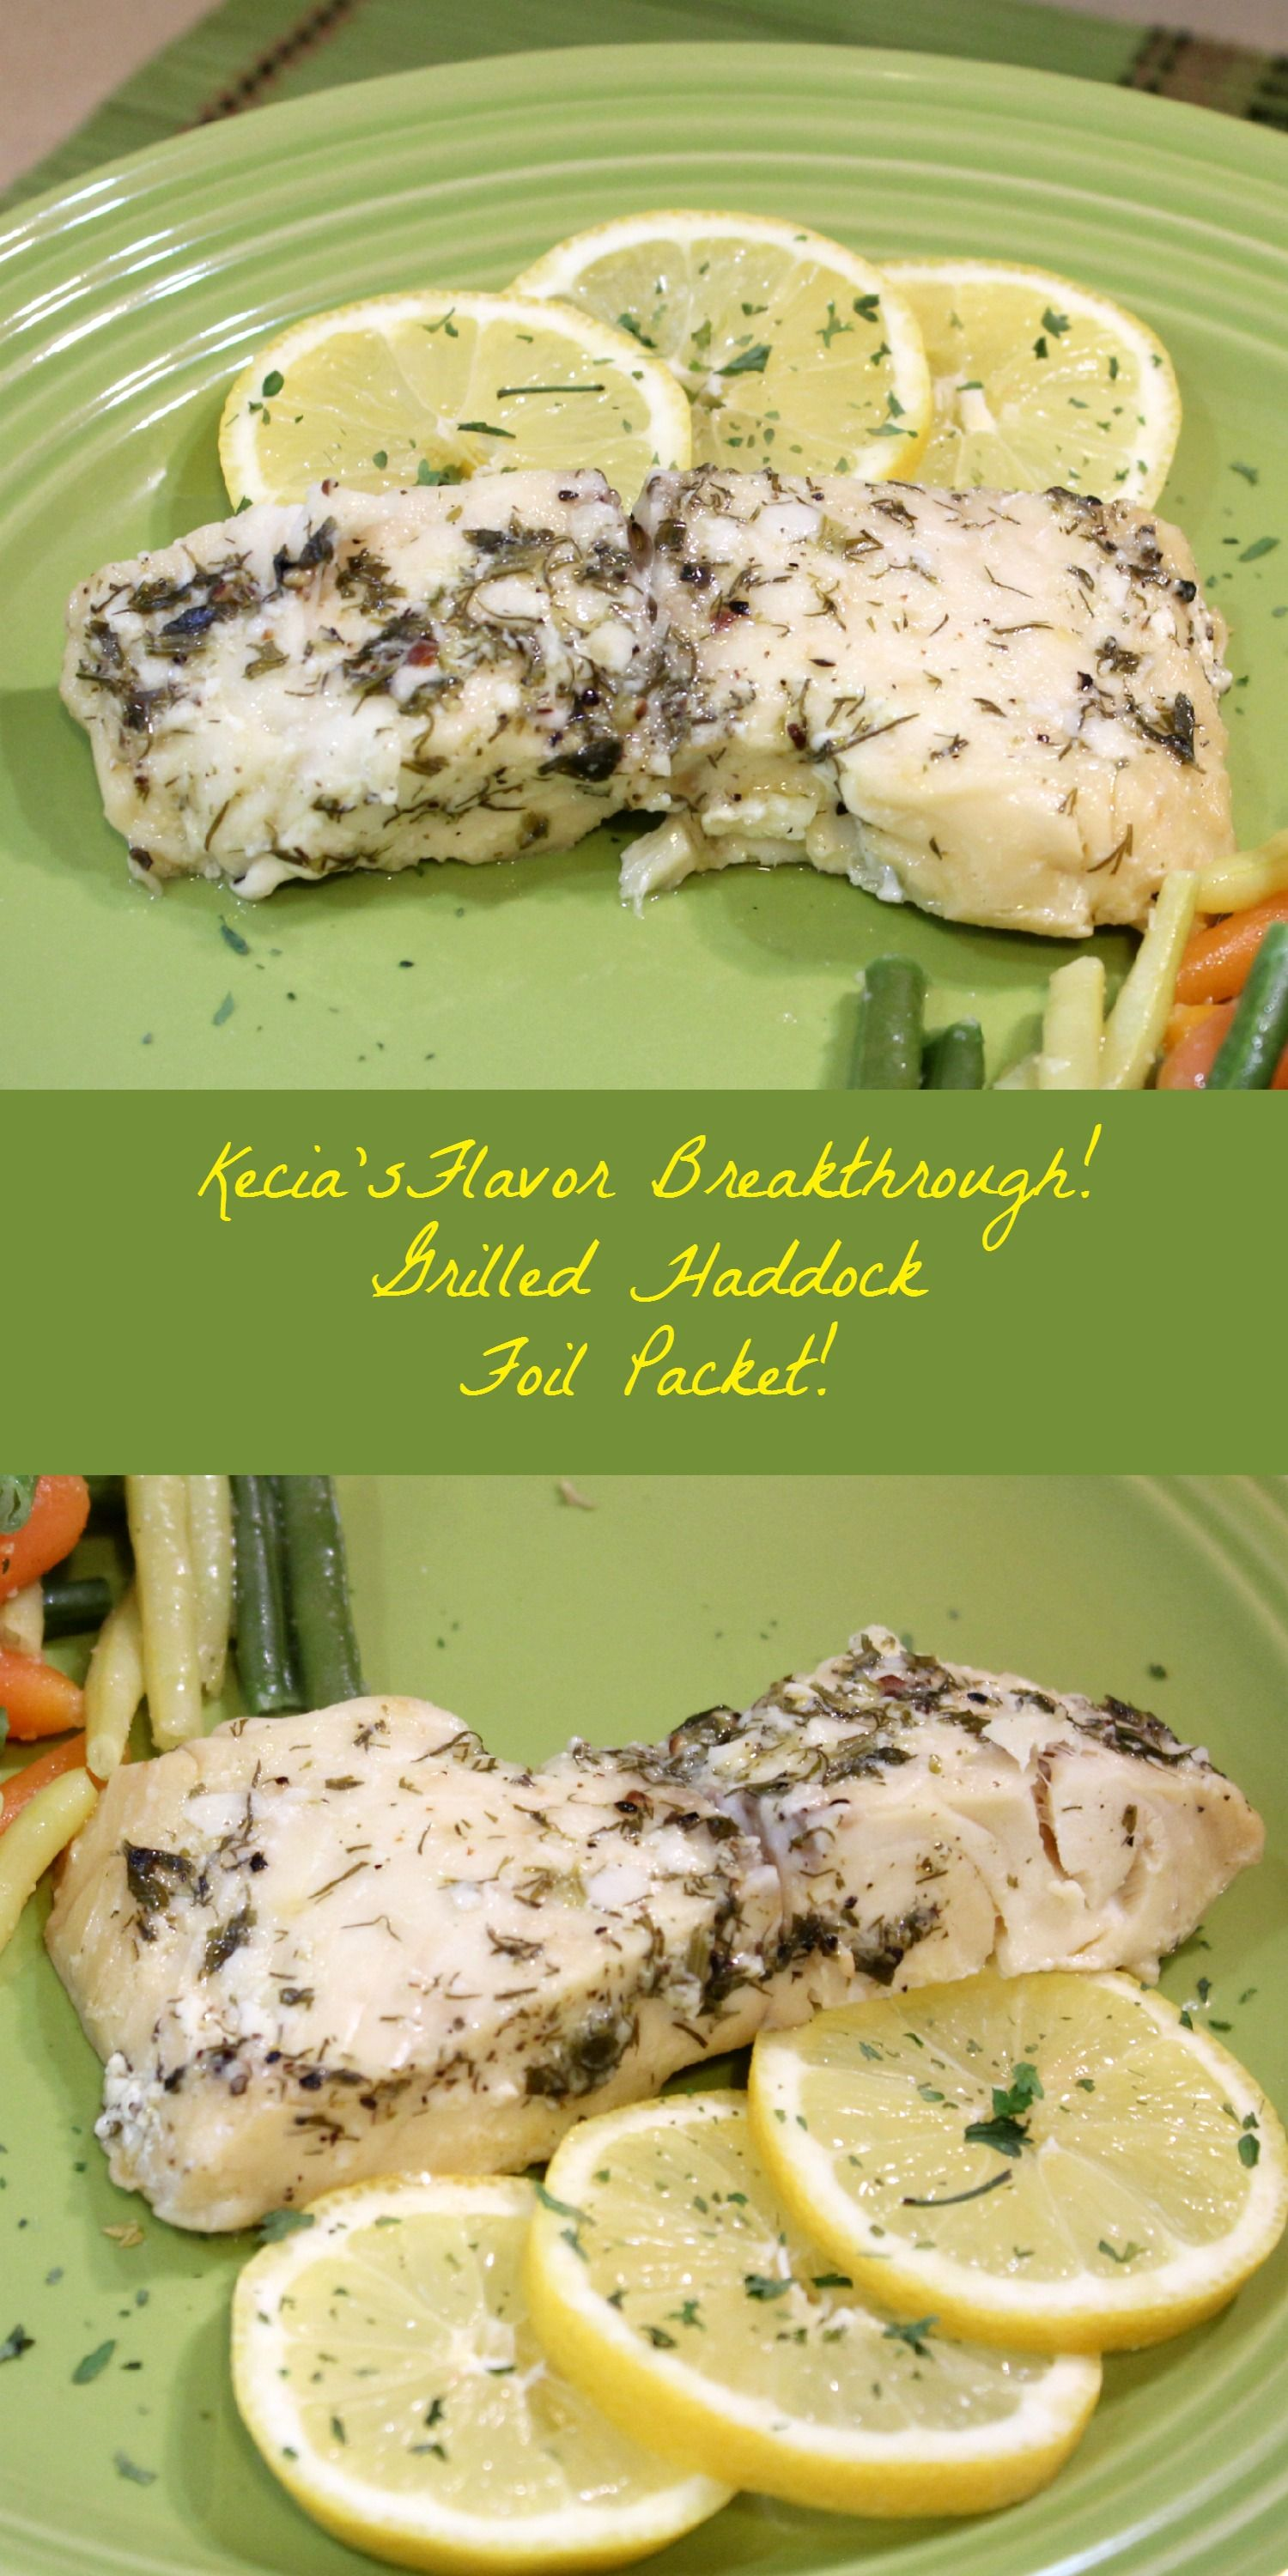 Grilled Haddock Foil Packets! | Entrees | Grilled haddock ...